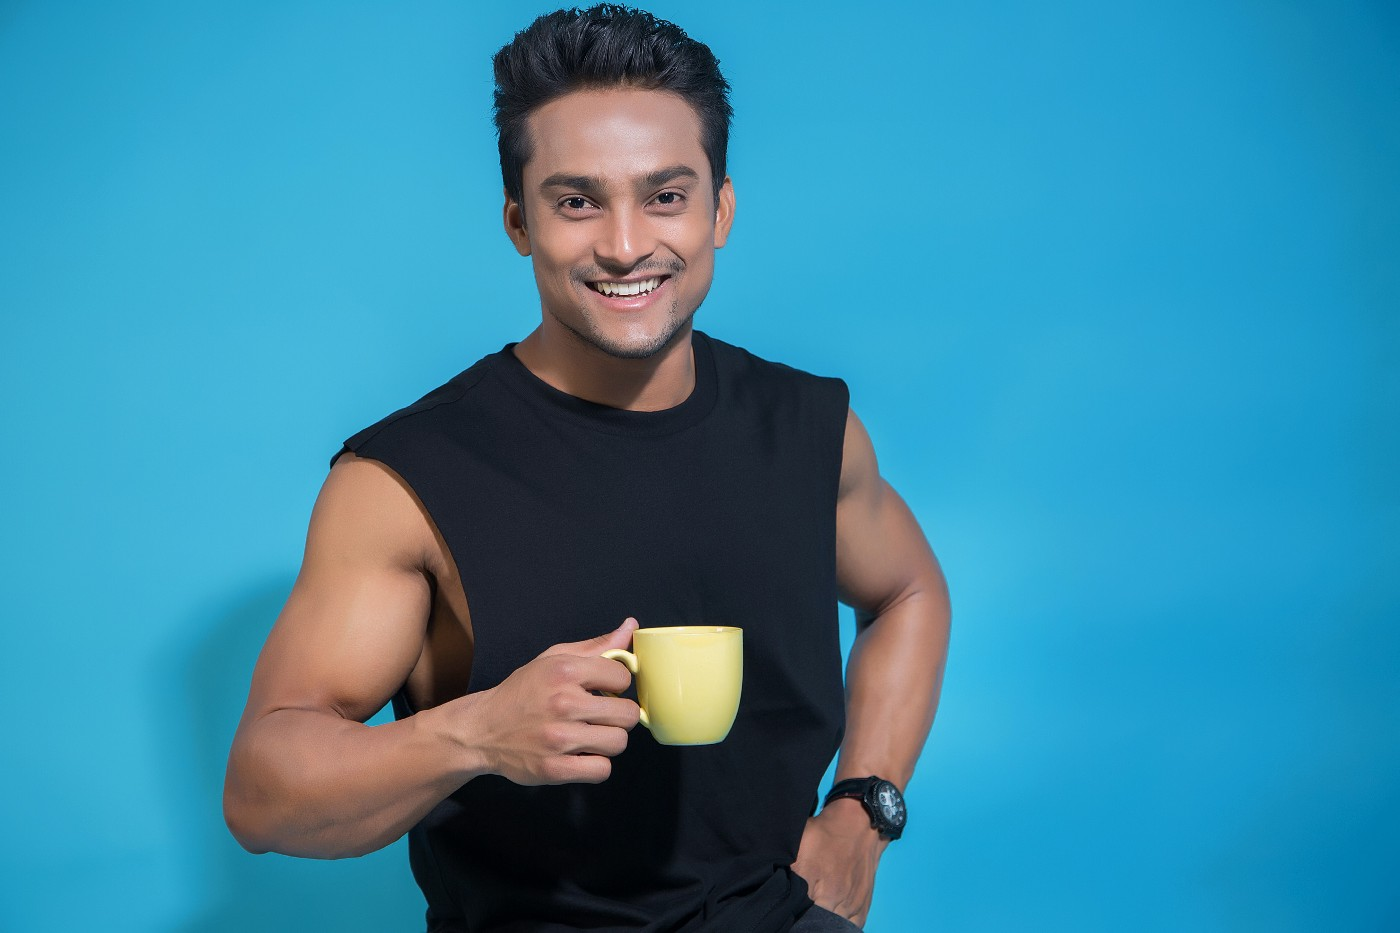 Smilingly douchey-looking person with hand on hip holding a yellow coffee mug